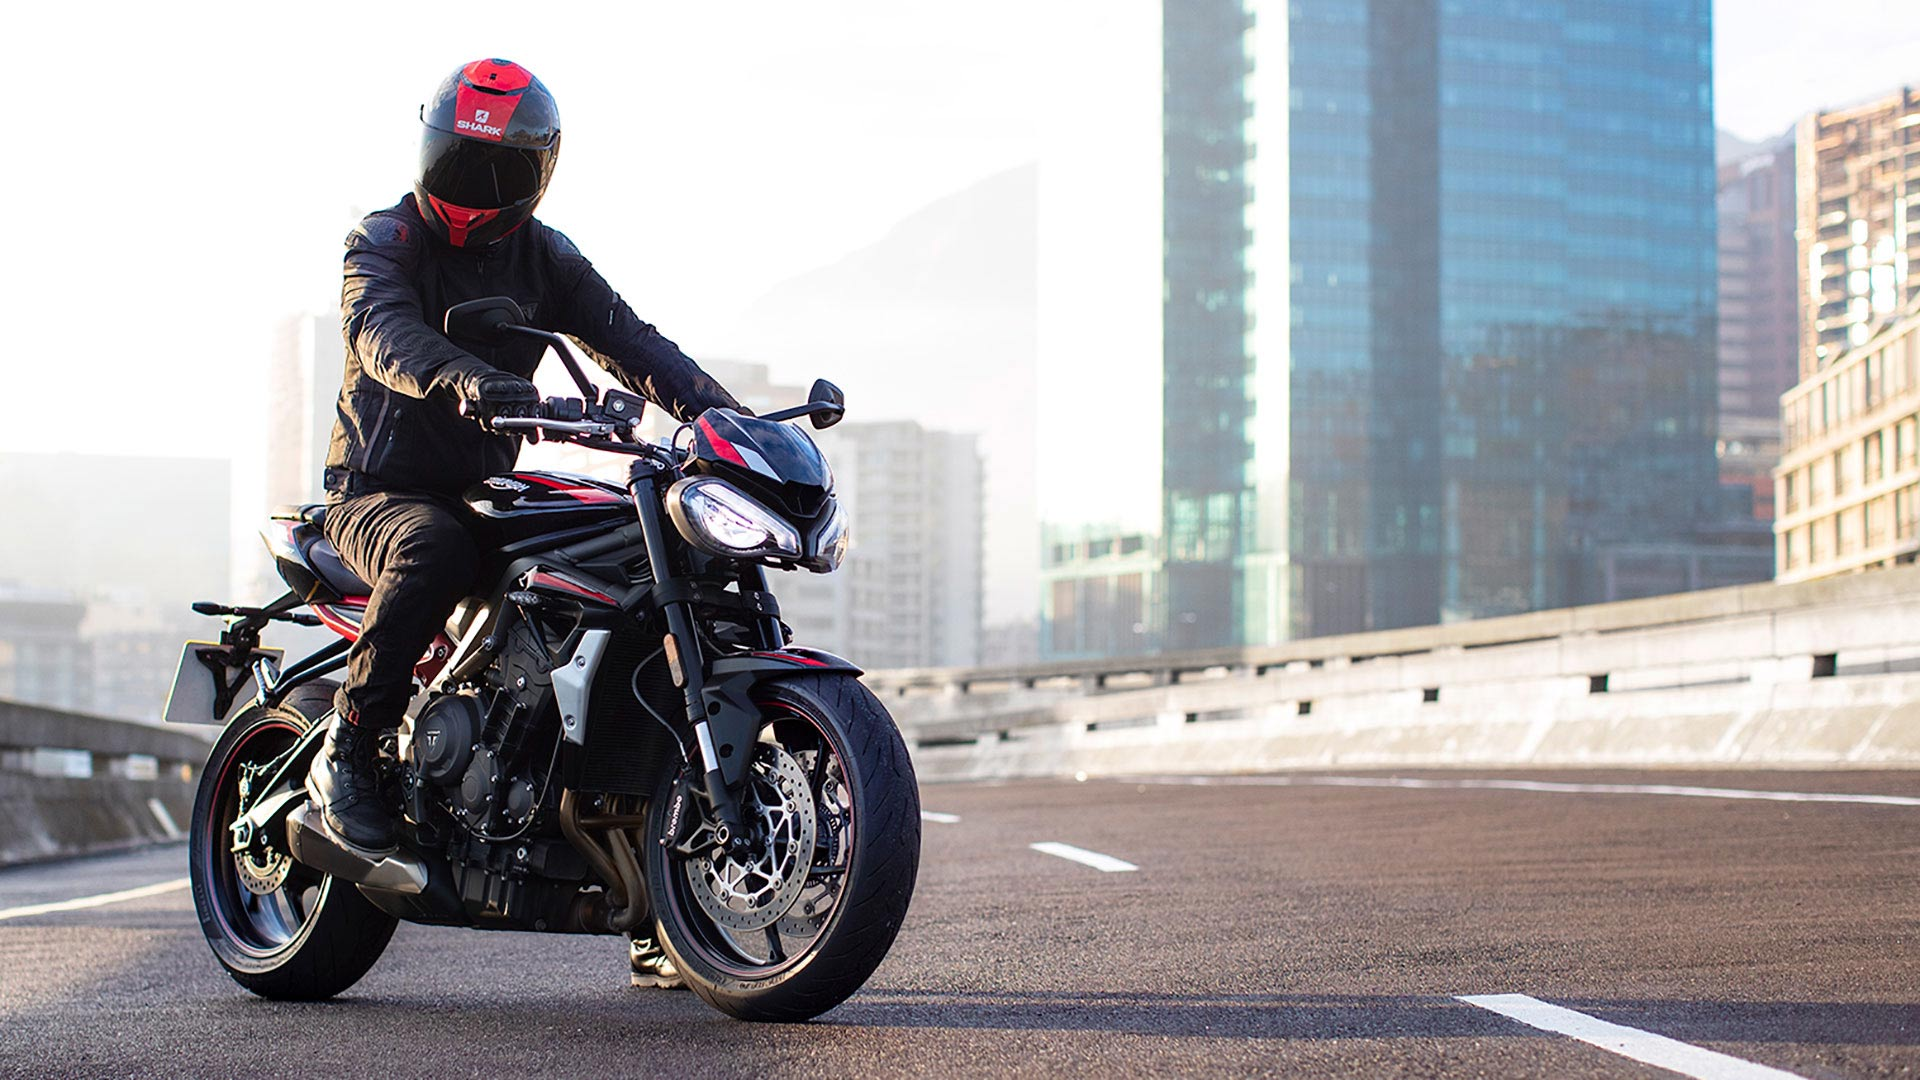 Rider on Triumph Street Triple R